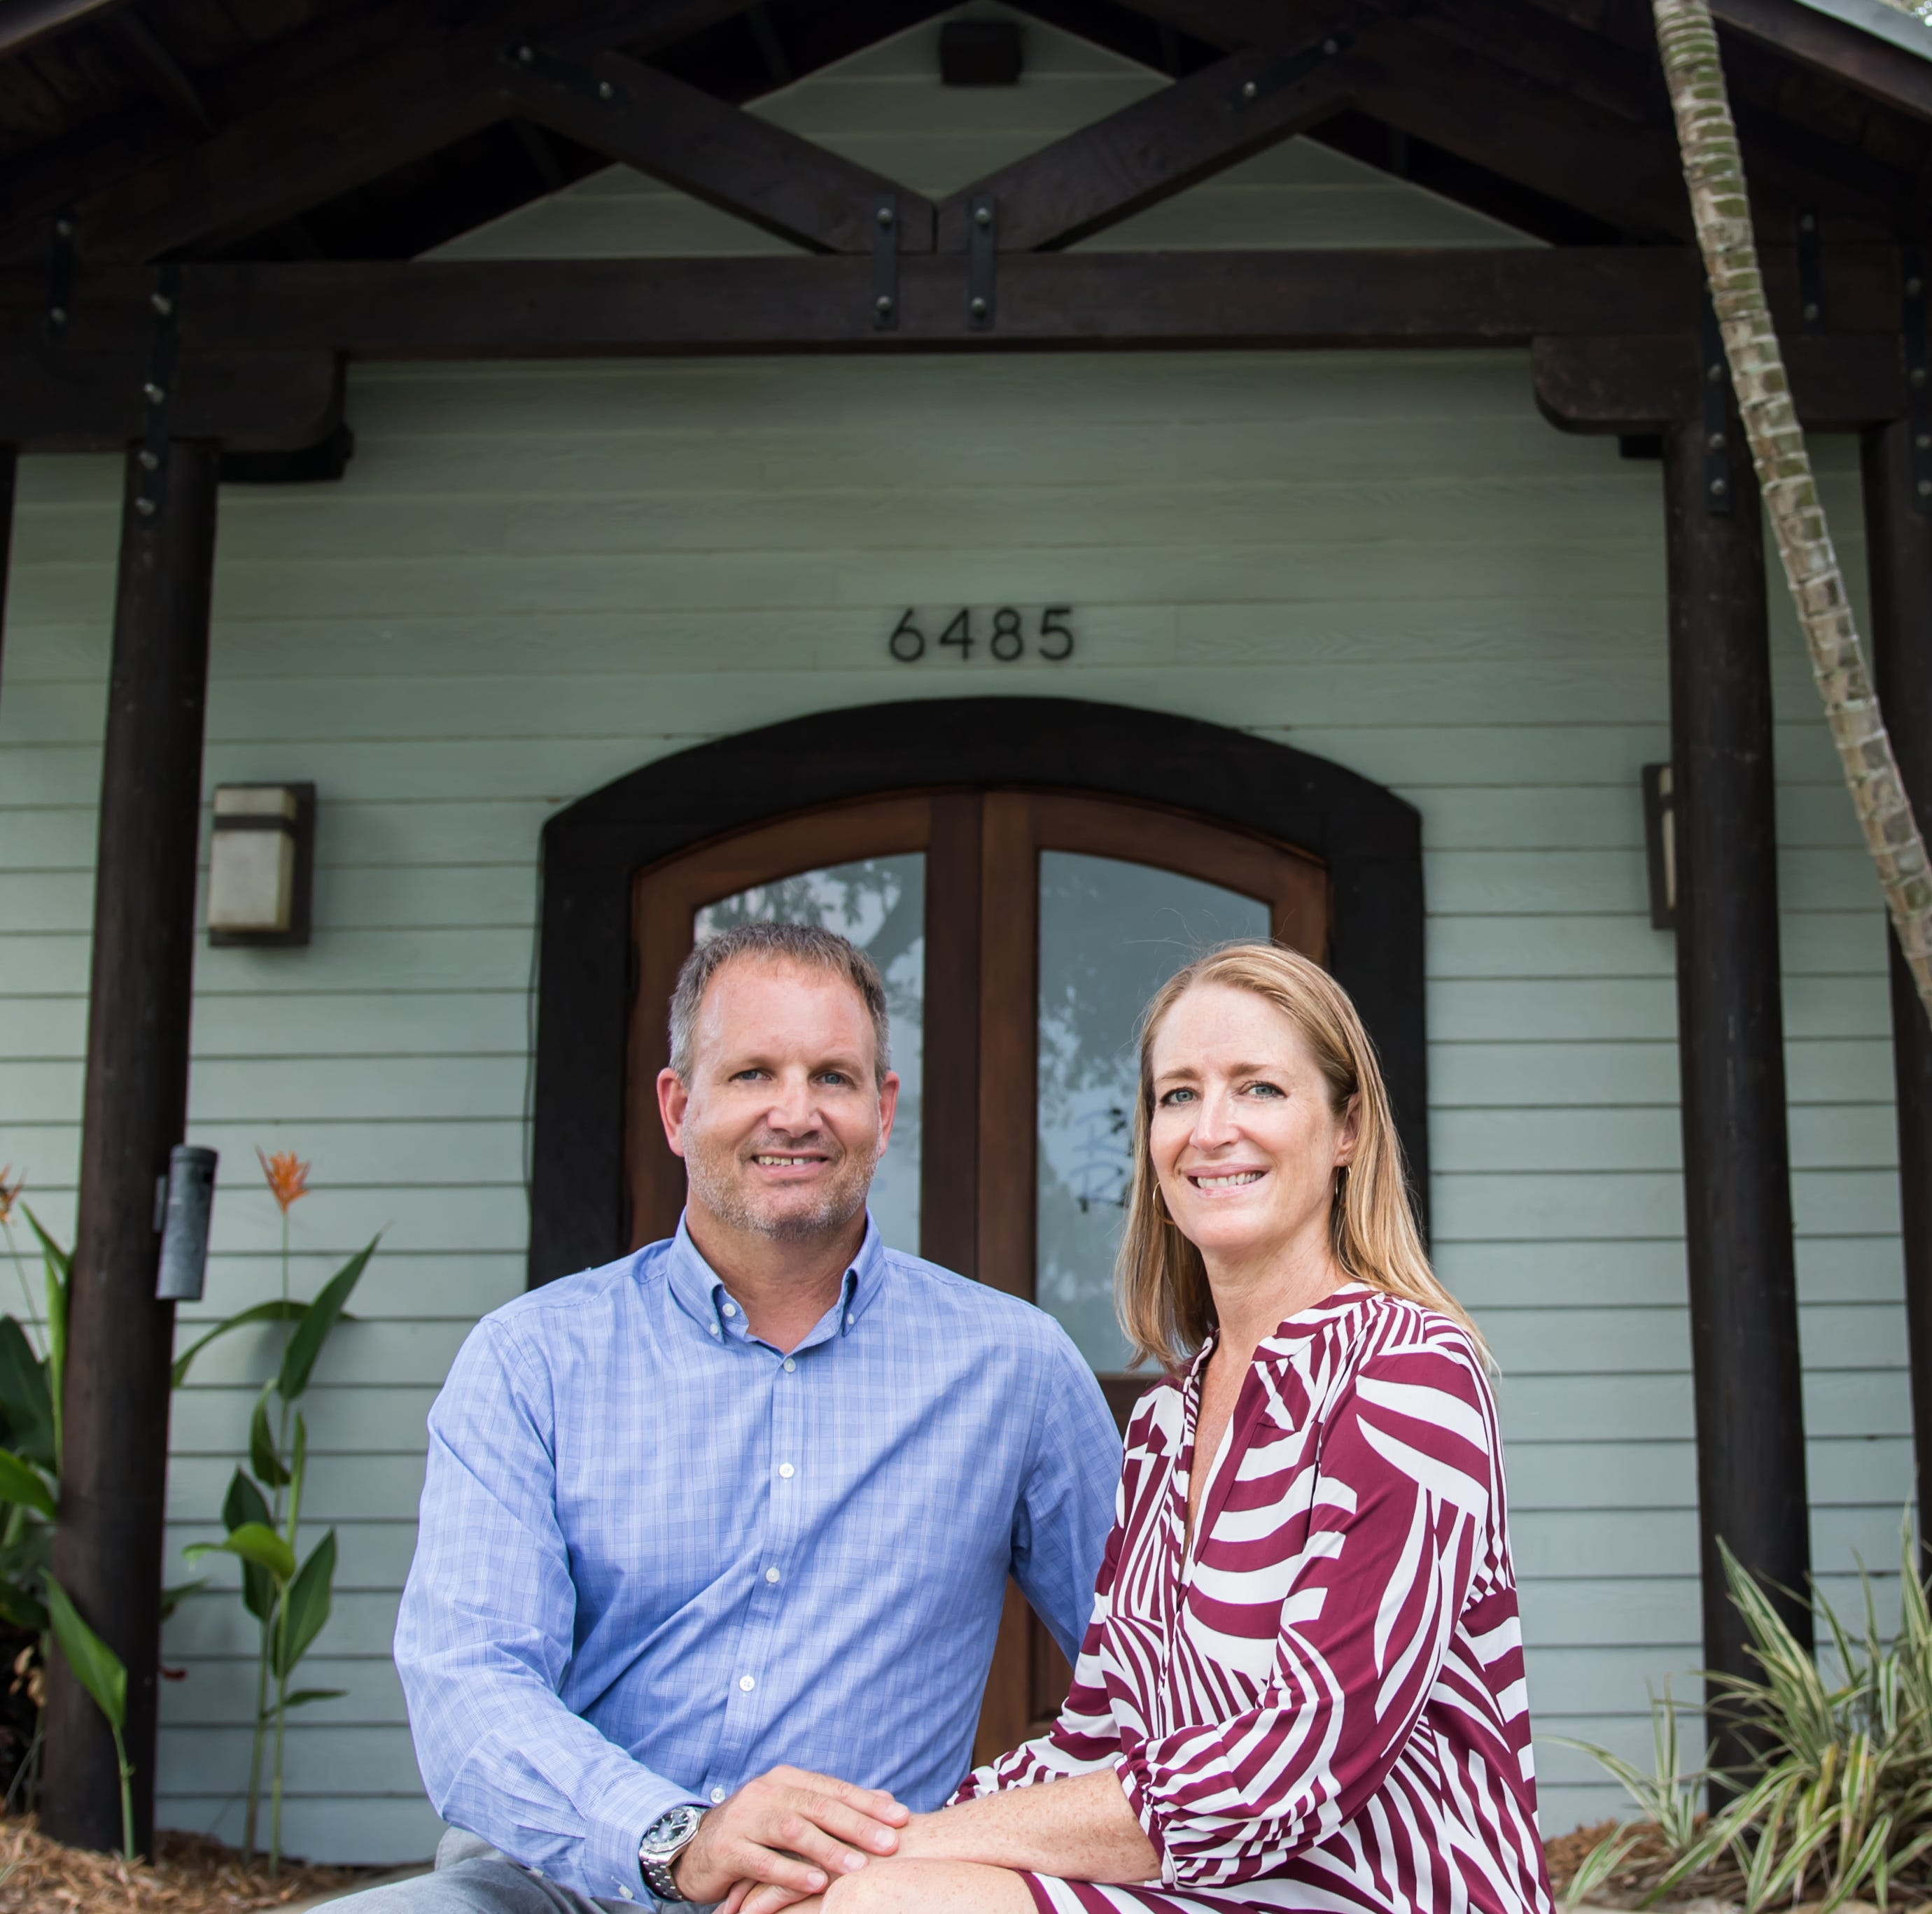 Q&A: Couple stays busy running two waterfront eateries: River Rocks and Capt'n Butcher's